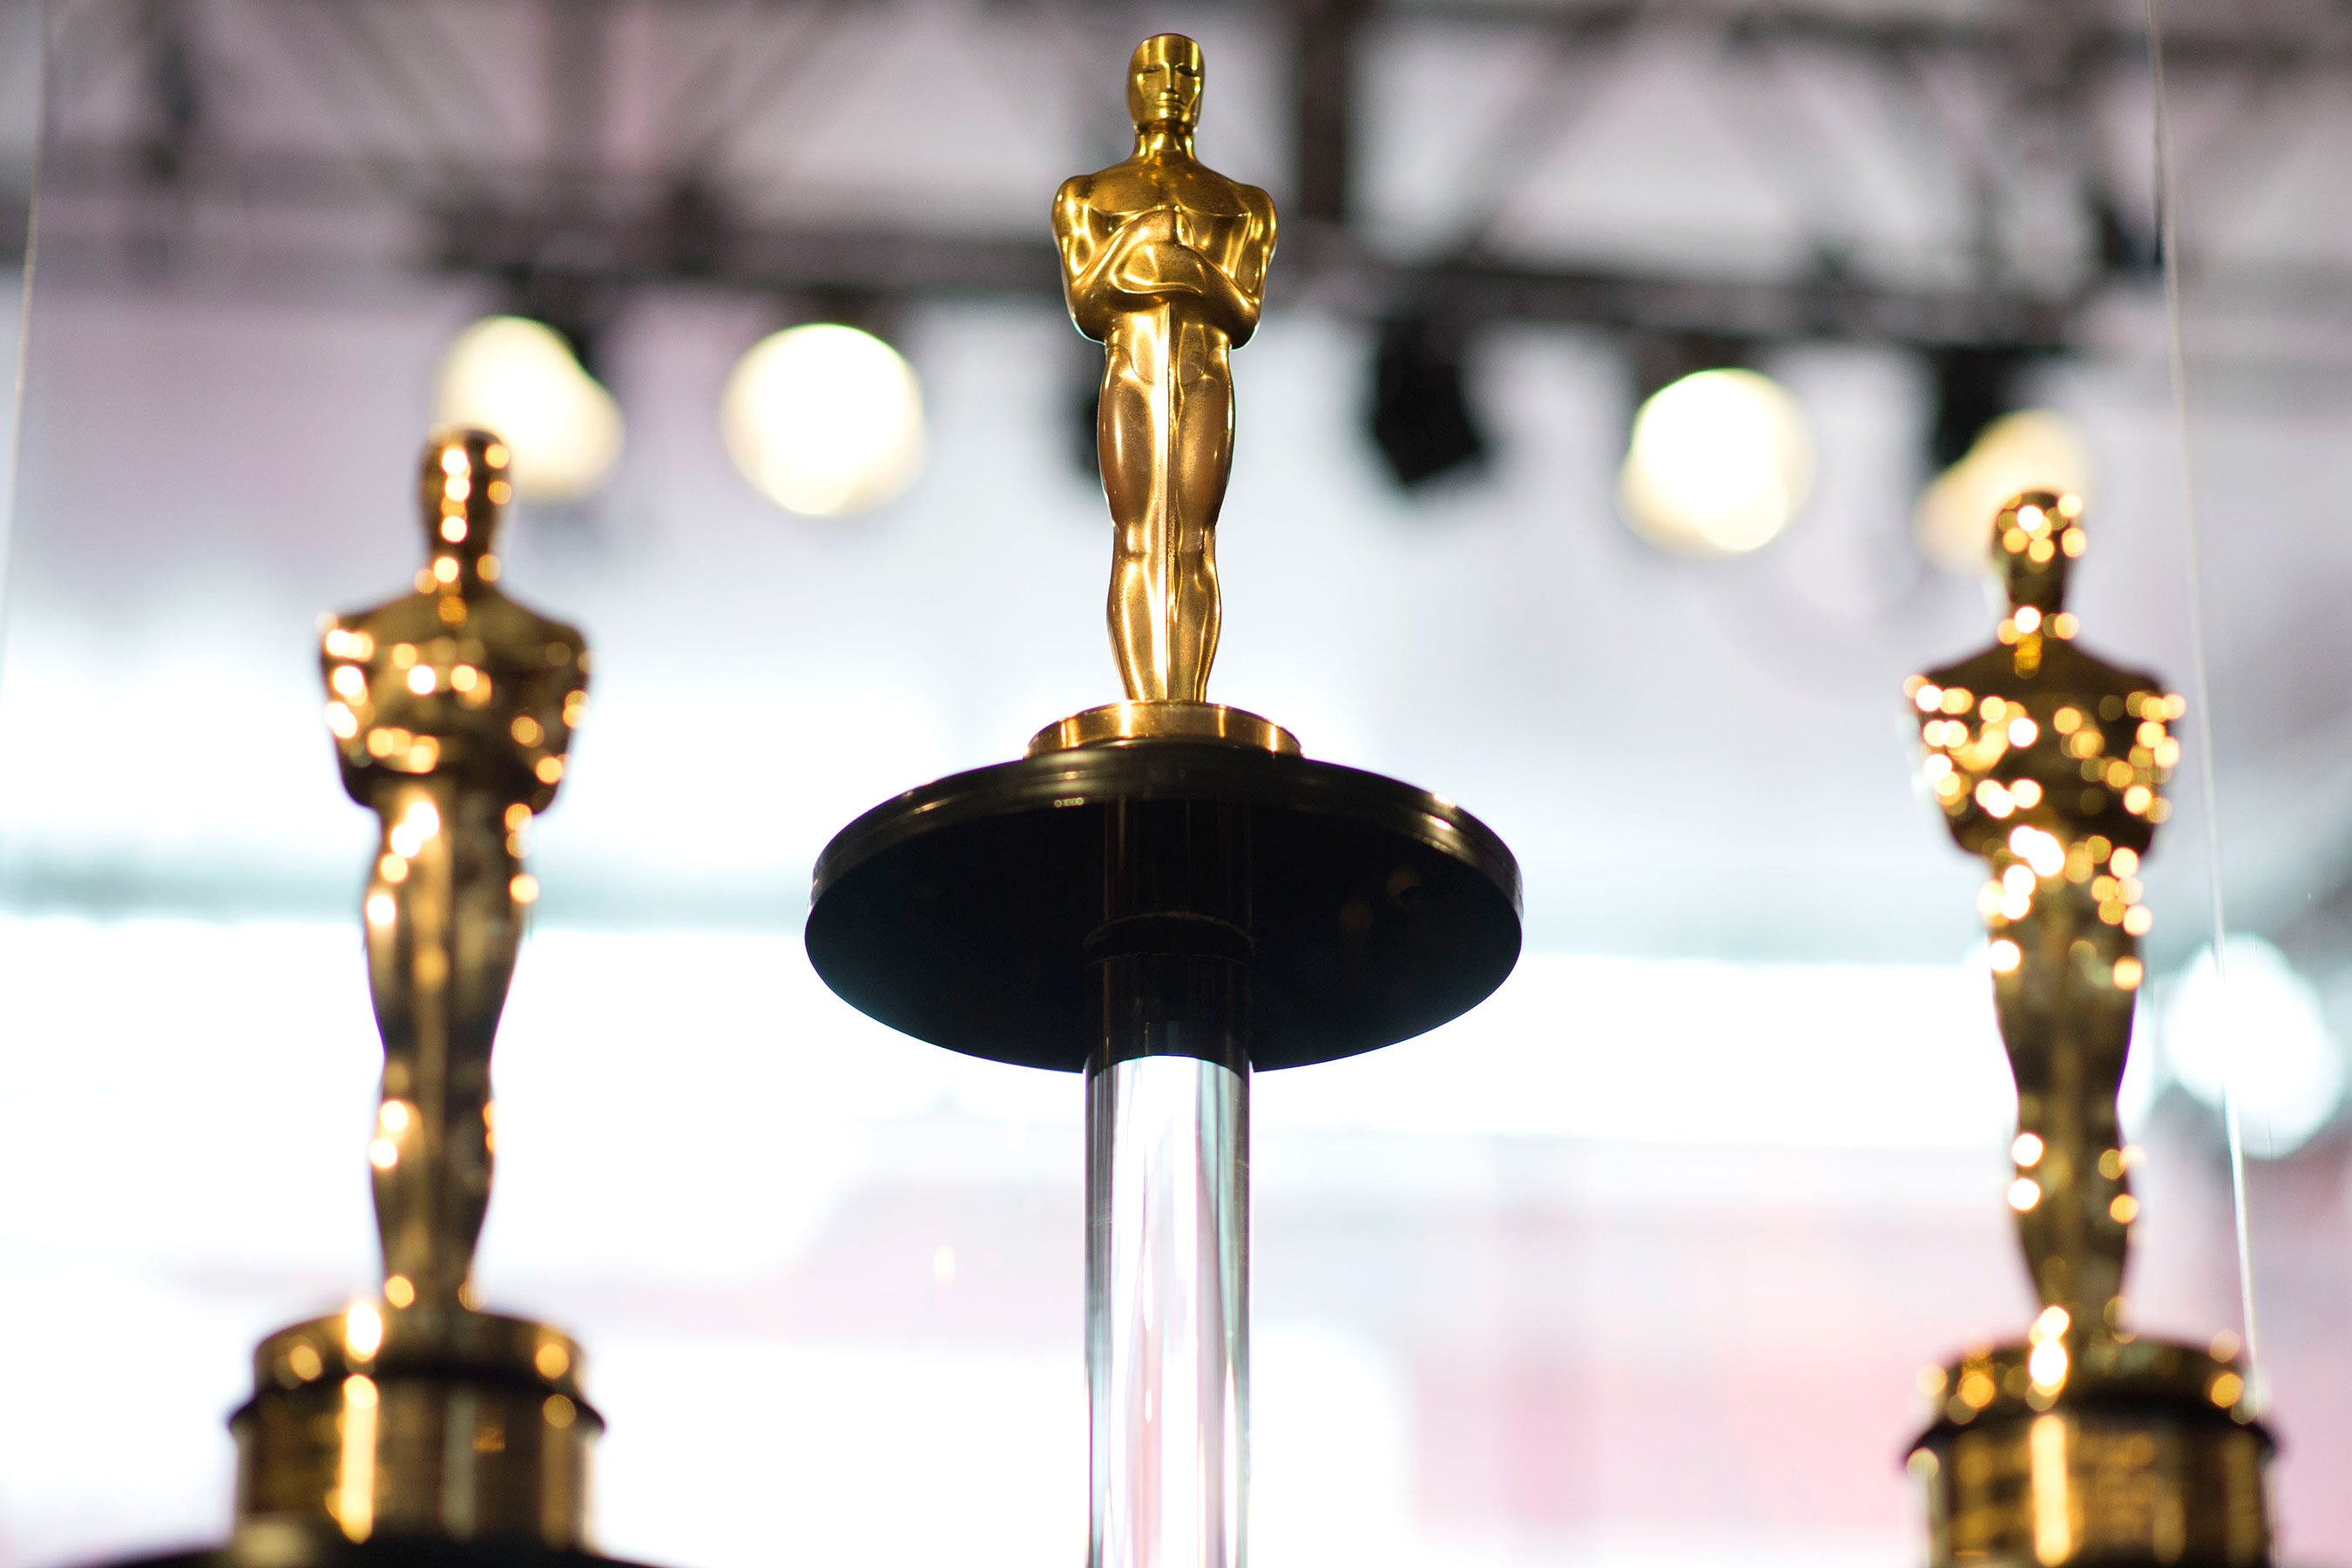 It was an Oscar do-over last night for host Jimmy Kimmel, producers Mike De Luca and Jennifer Todd and Best Picture presenters Warren Beatty and Faye Dunaway. Following last year's Envelopegate, which led to Beatty and Dunaway inadvertently announcing a wrong Best Picture winner, the quartet's second go-around went without a hitch. The good news …